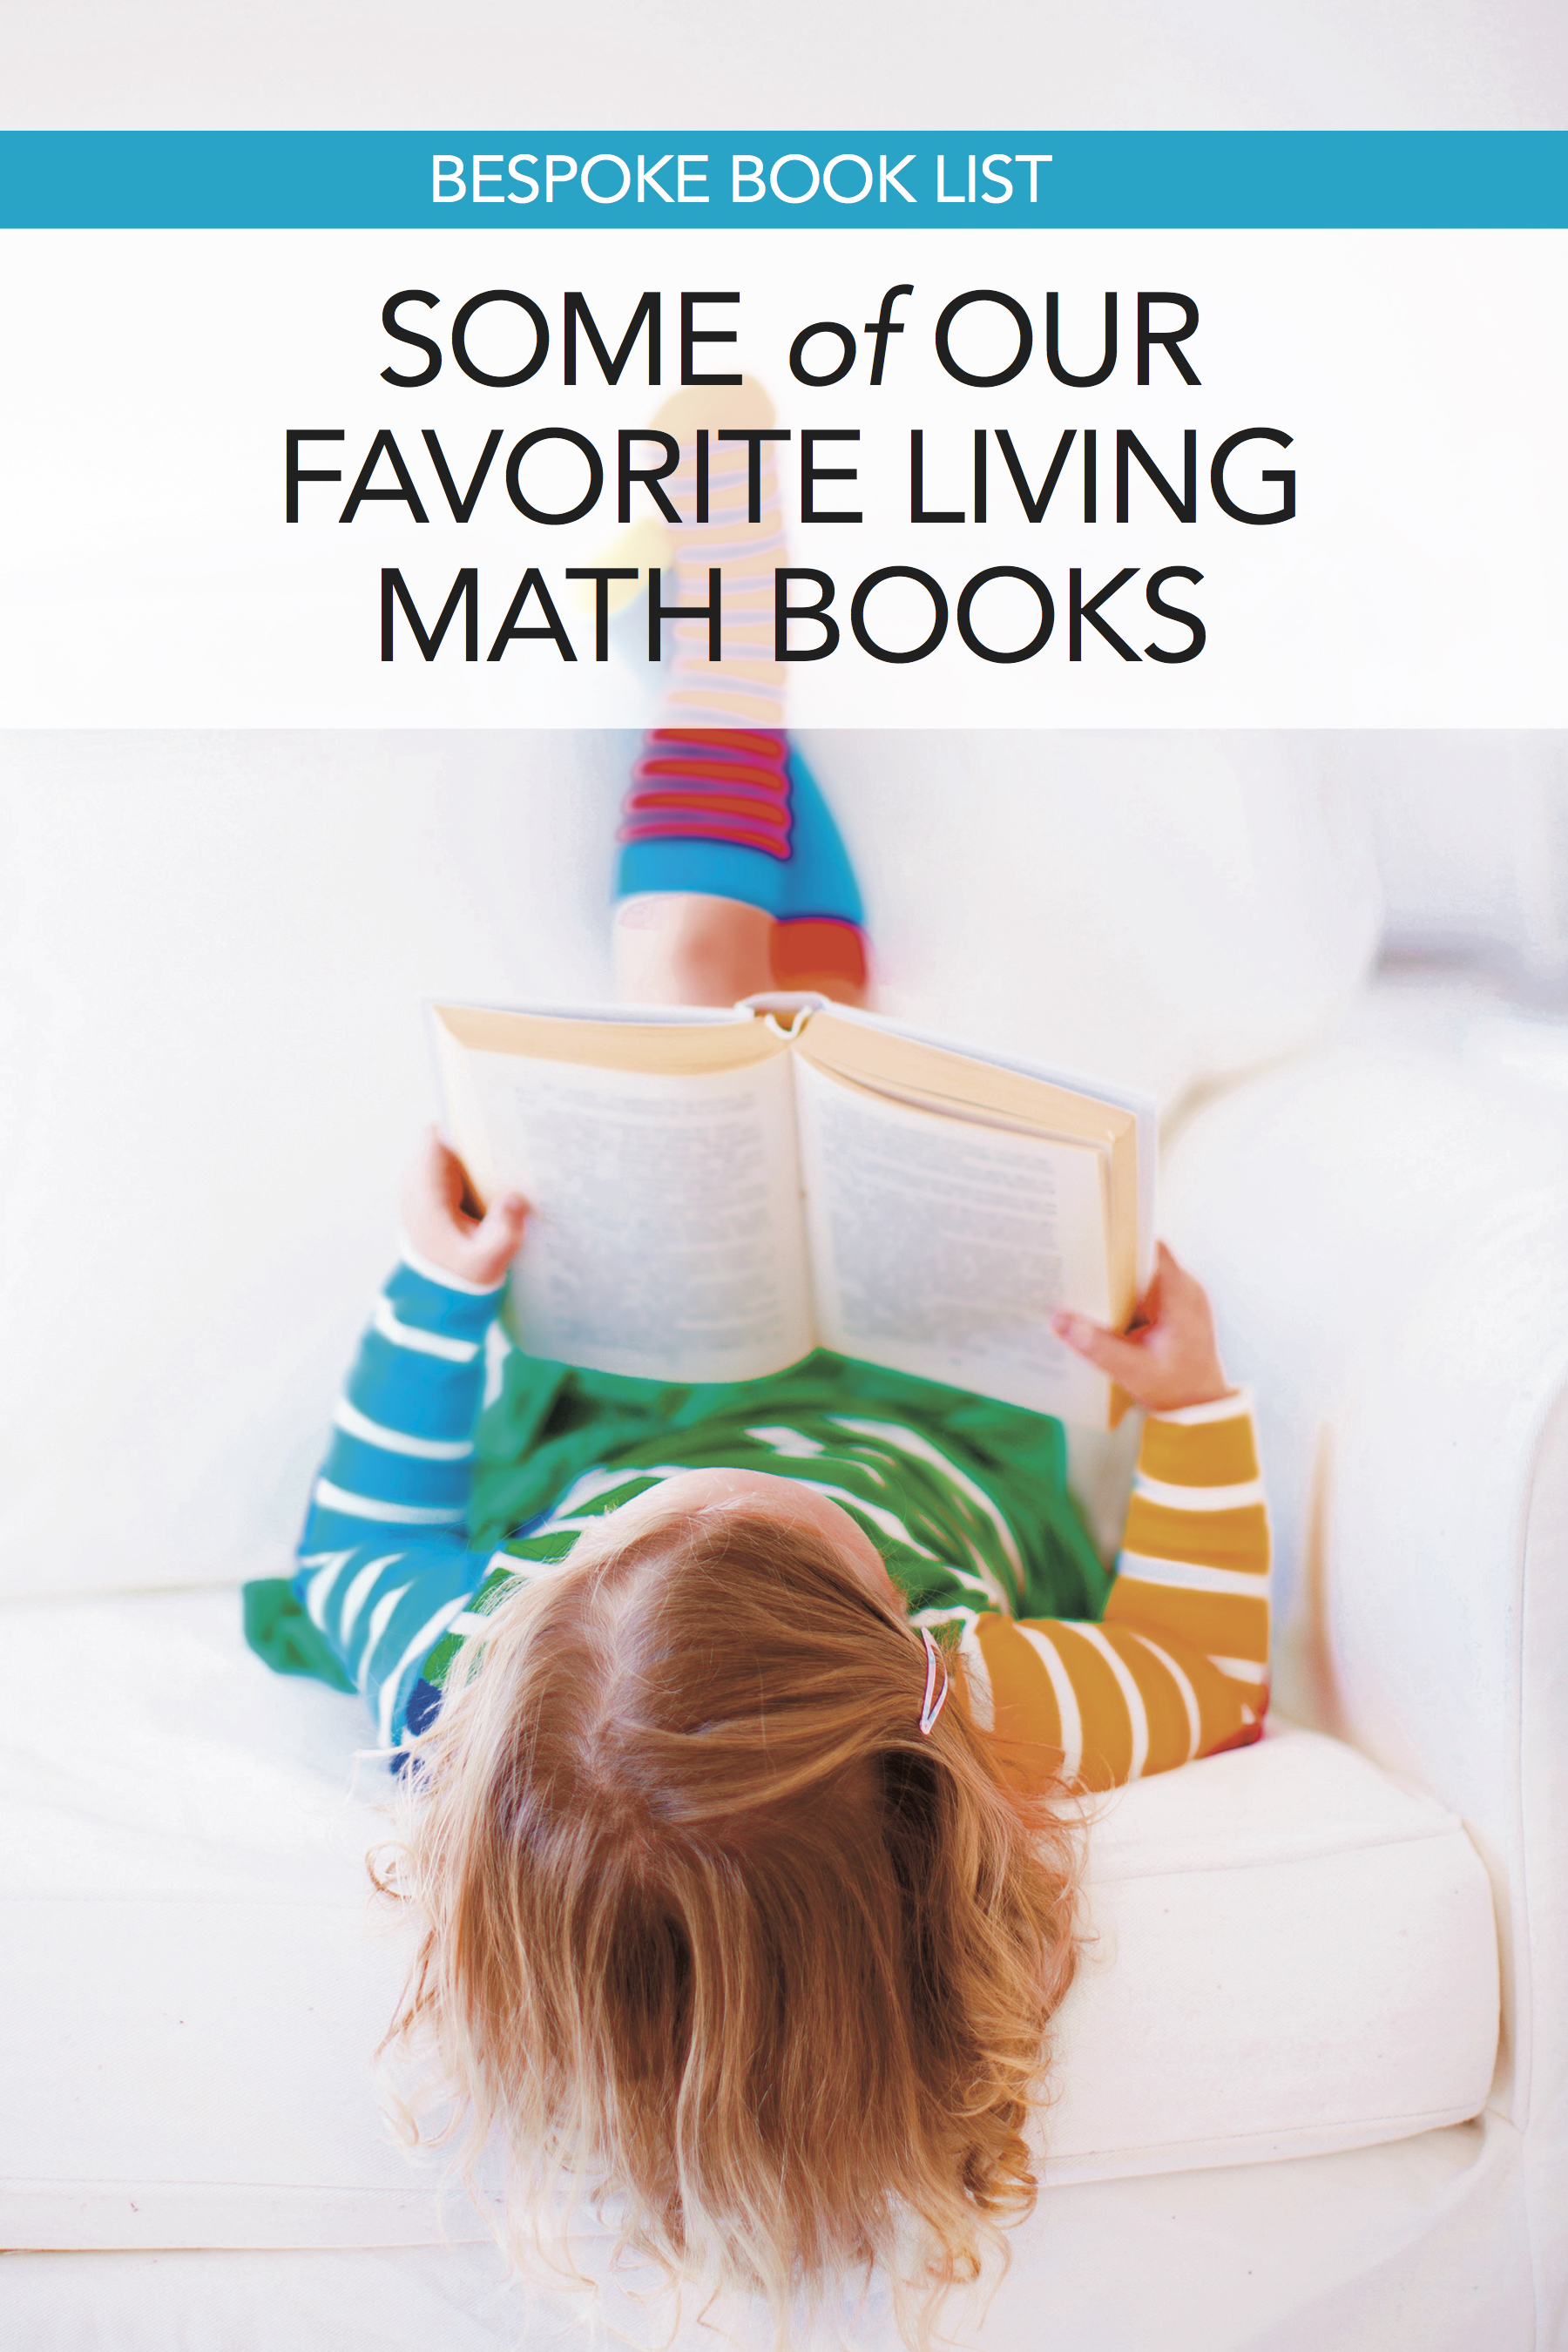 Some of Our Favorite Living Math Books